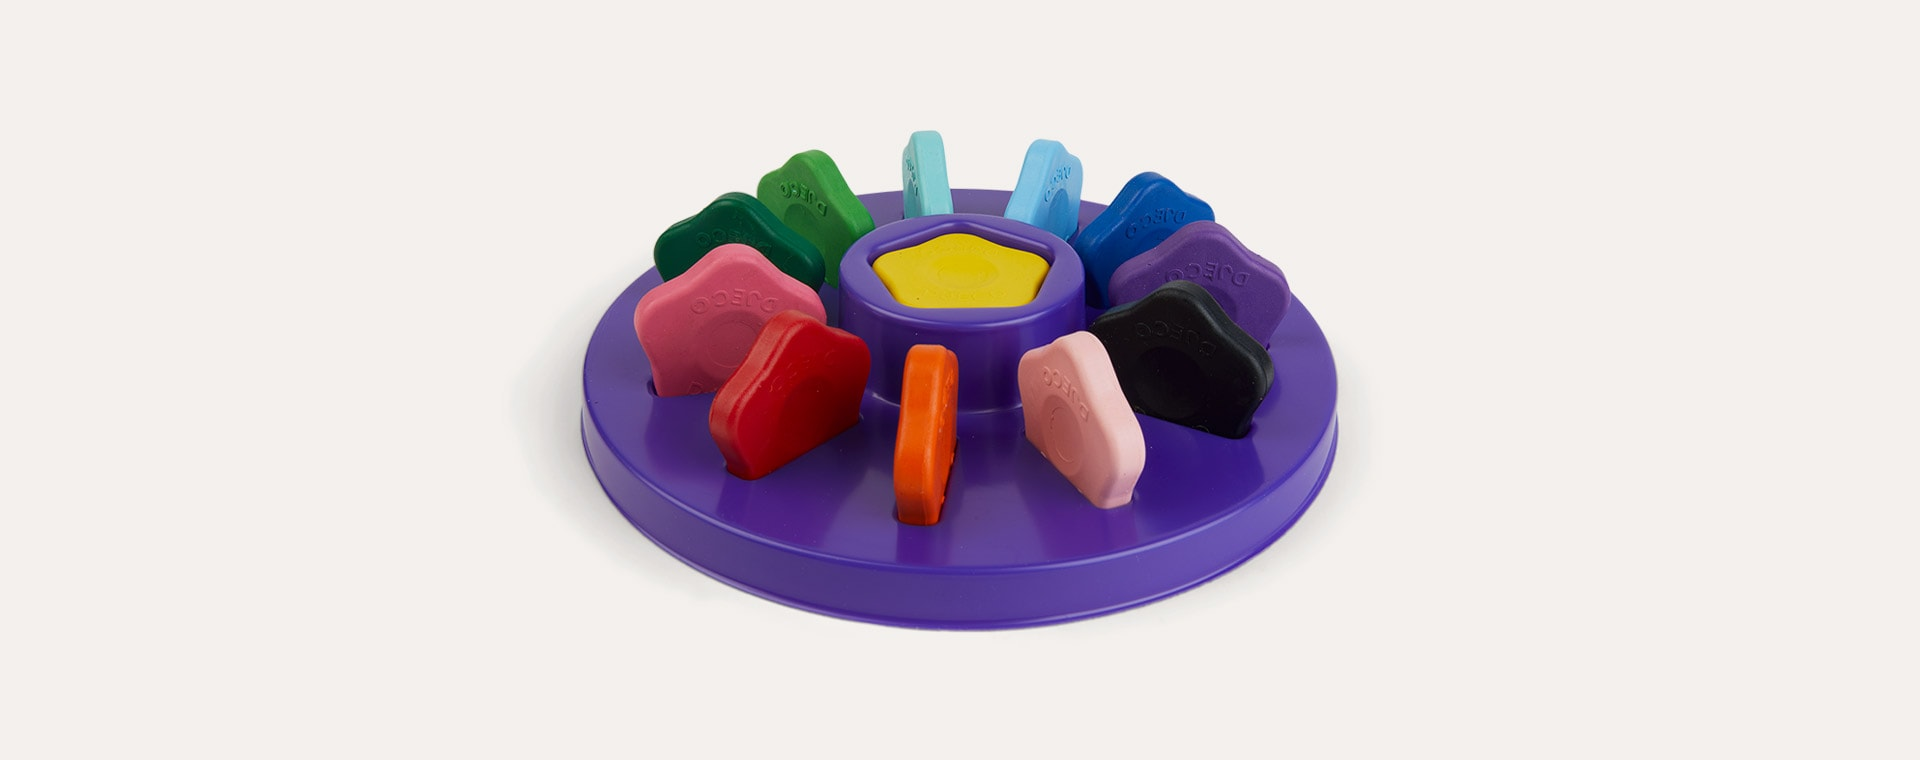 Multi Djeco 12 Flower Crayons For Toddlers